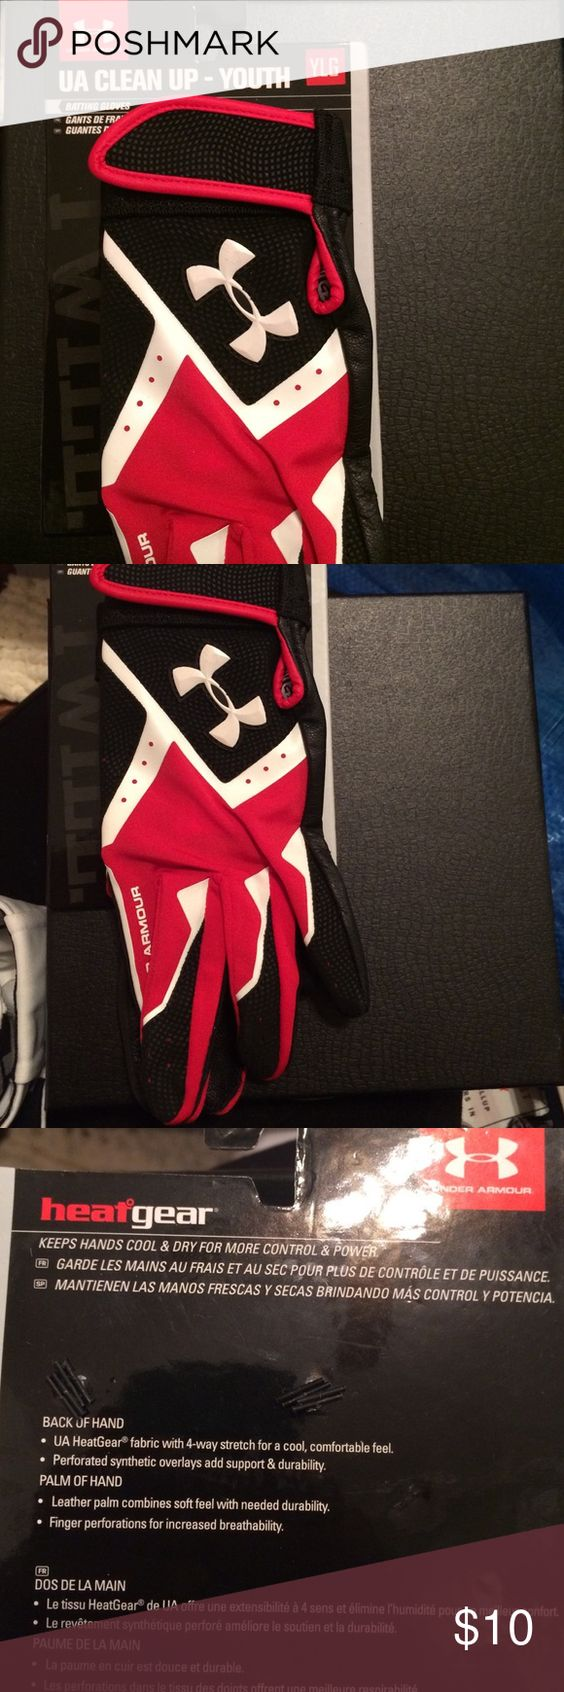 Youth Large Batting Gloves UA Clean Up -Youth batting gloves. Never been worn. Under Armour Other